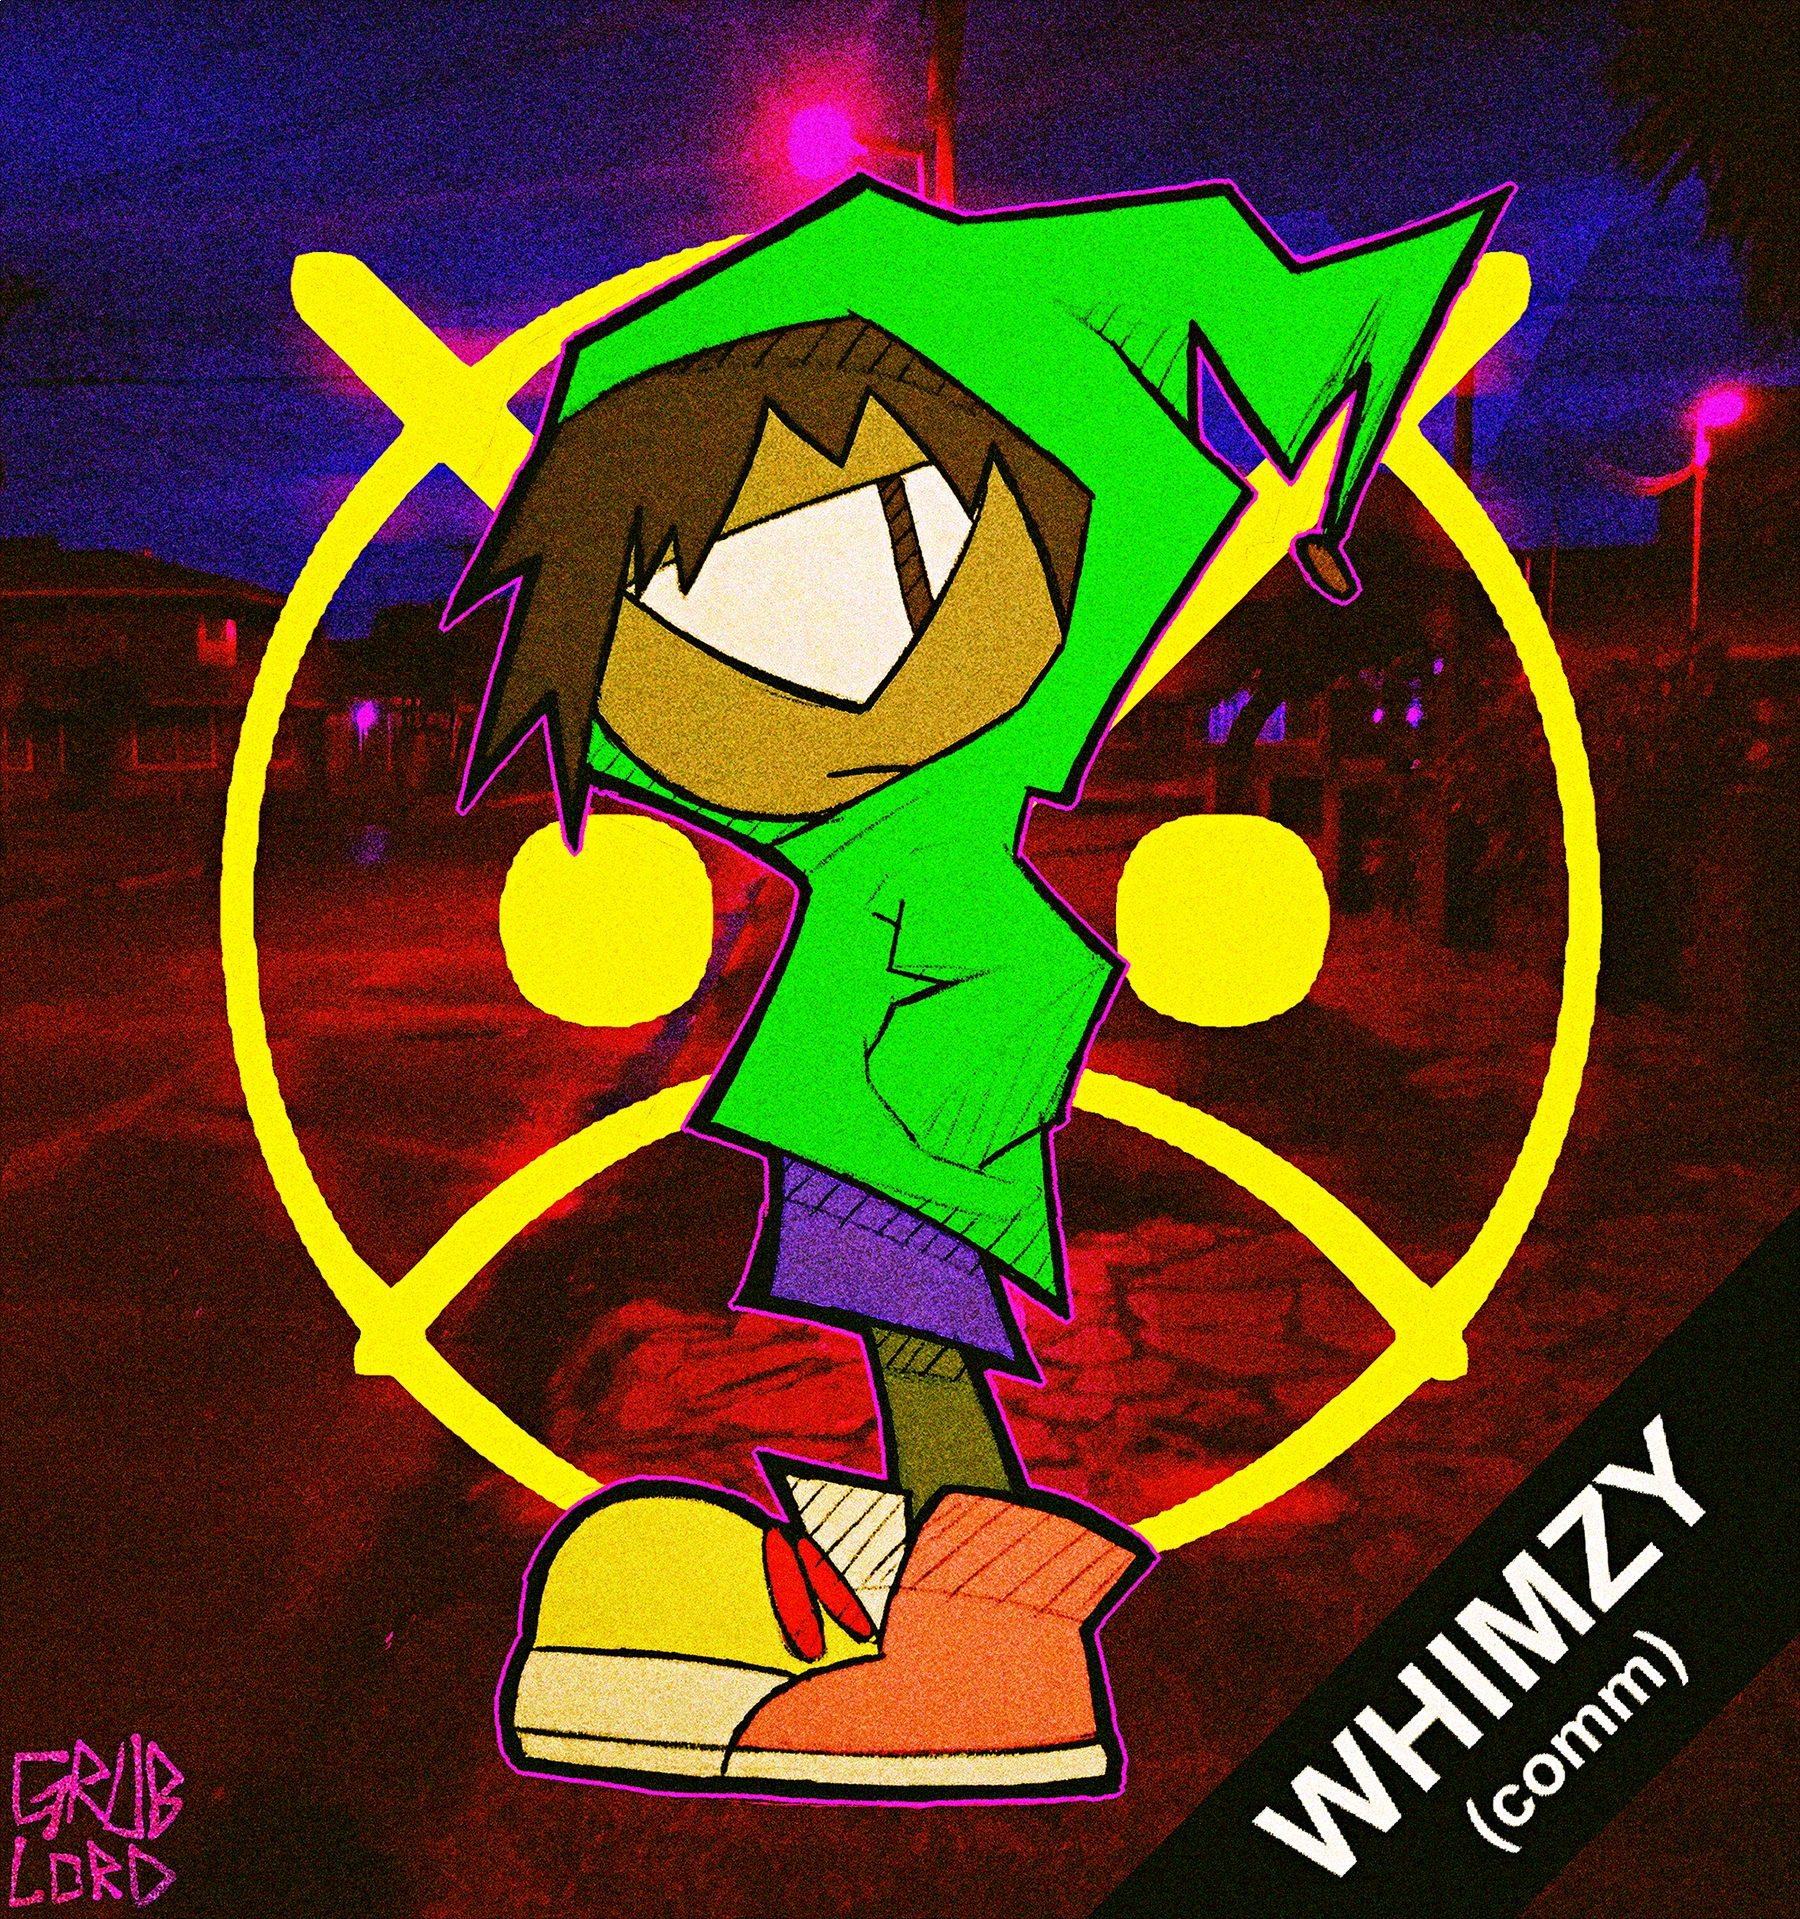 WHIMZYCLE